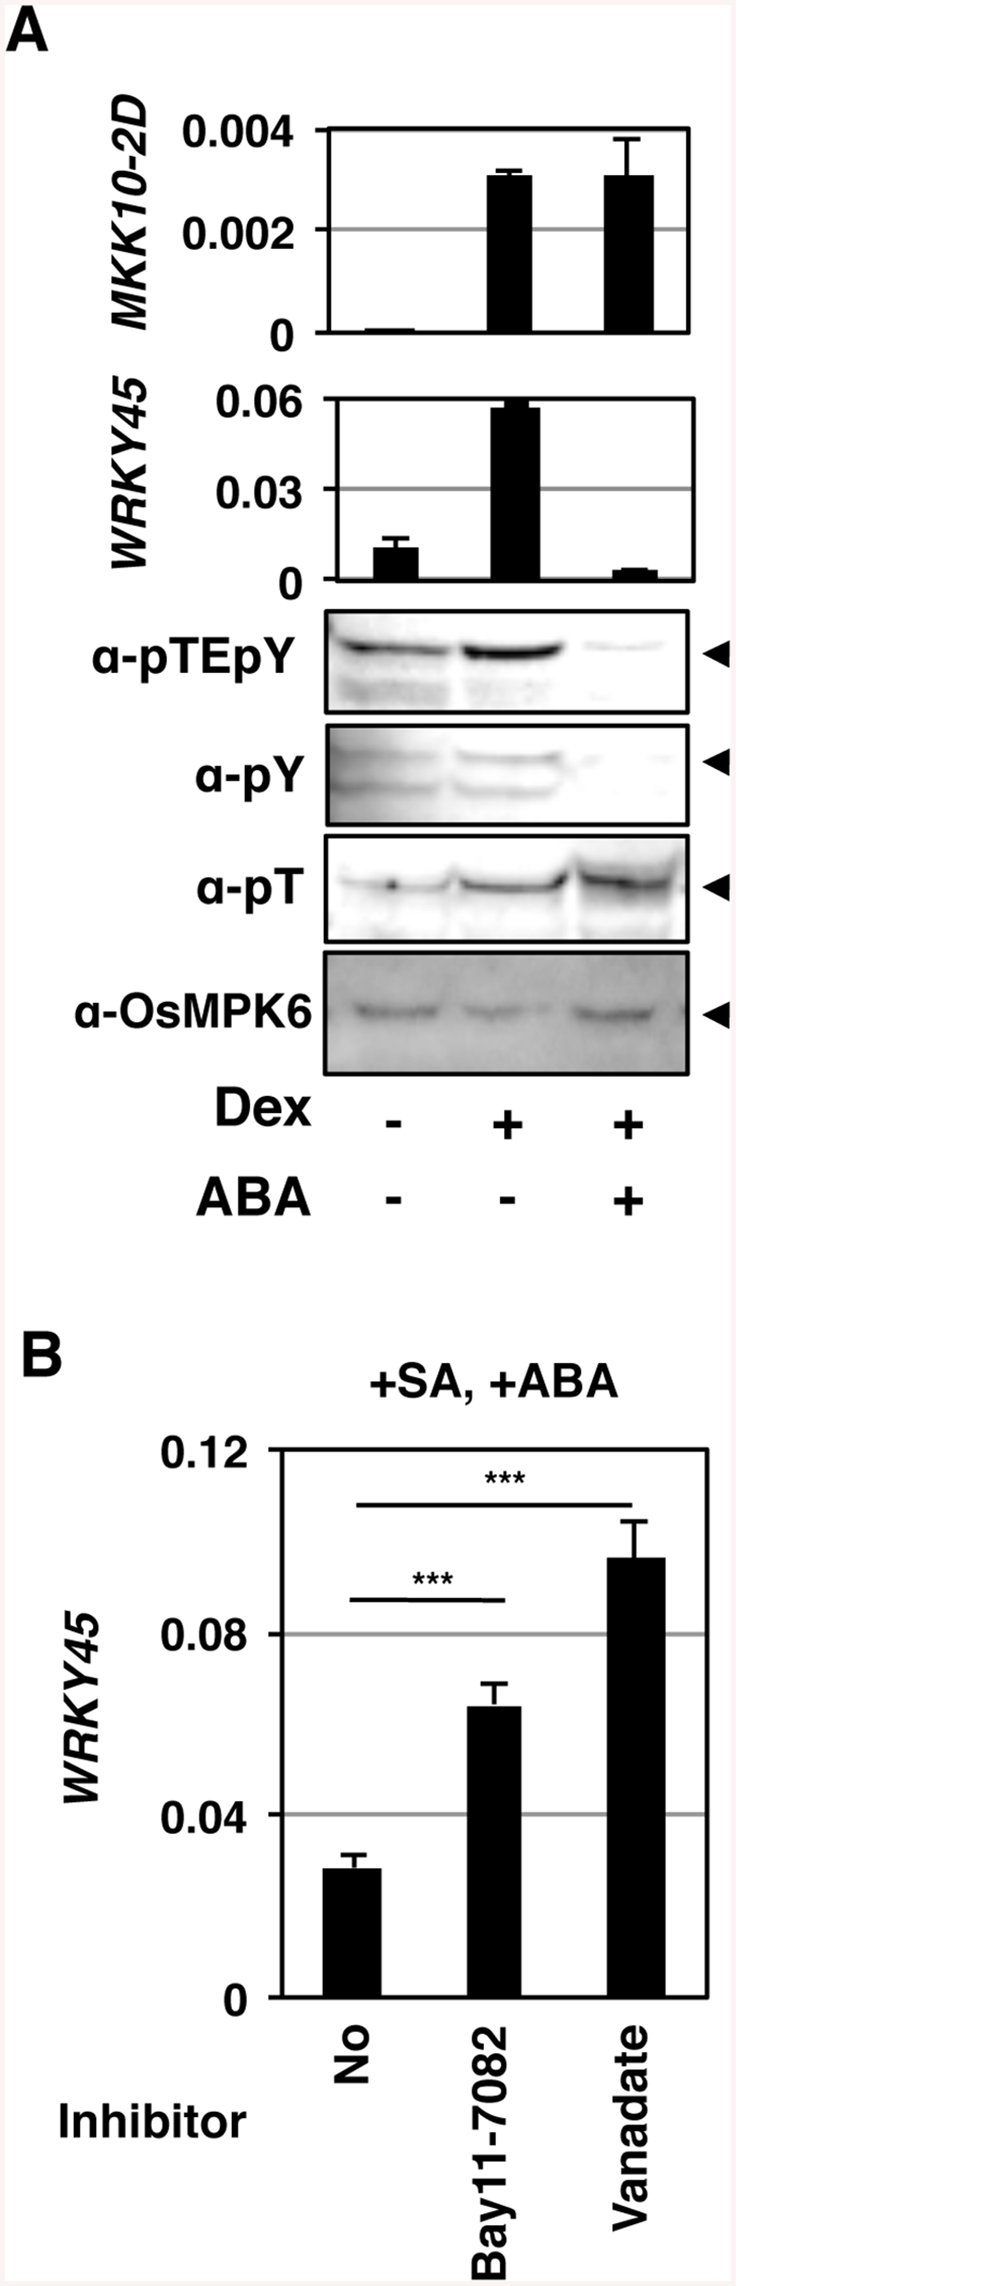 Tyr-specific dephosphorylation of OsMPK6 and suppression of <i>WRKY45</i> expression in response to ABA.